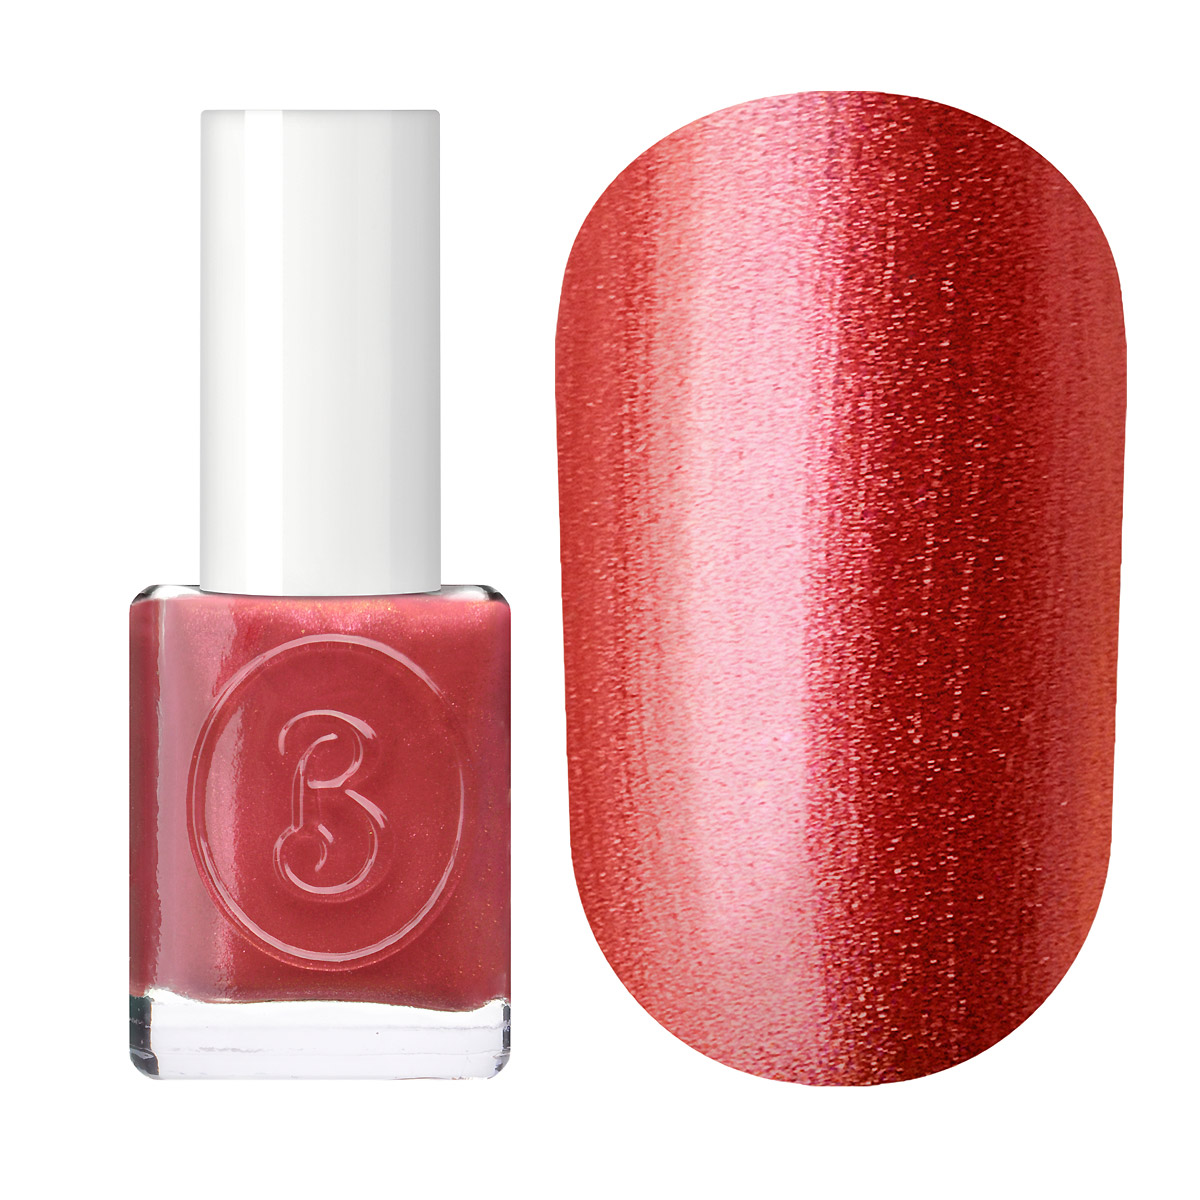 Berenice Oxygen Nail Polish / 38 luxury dress